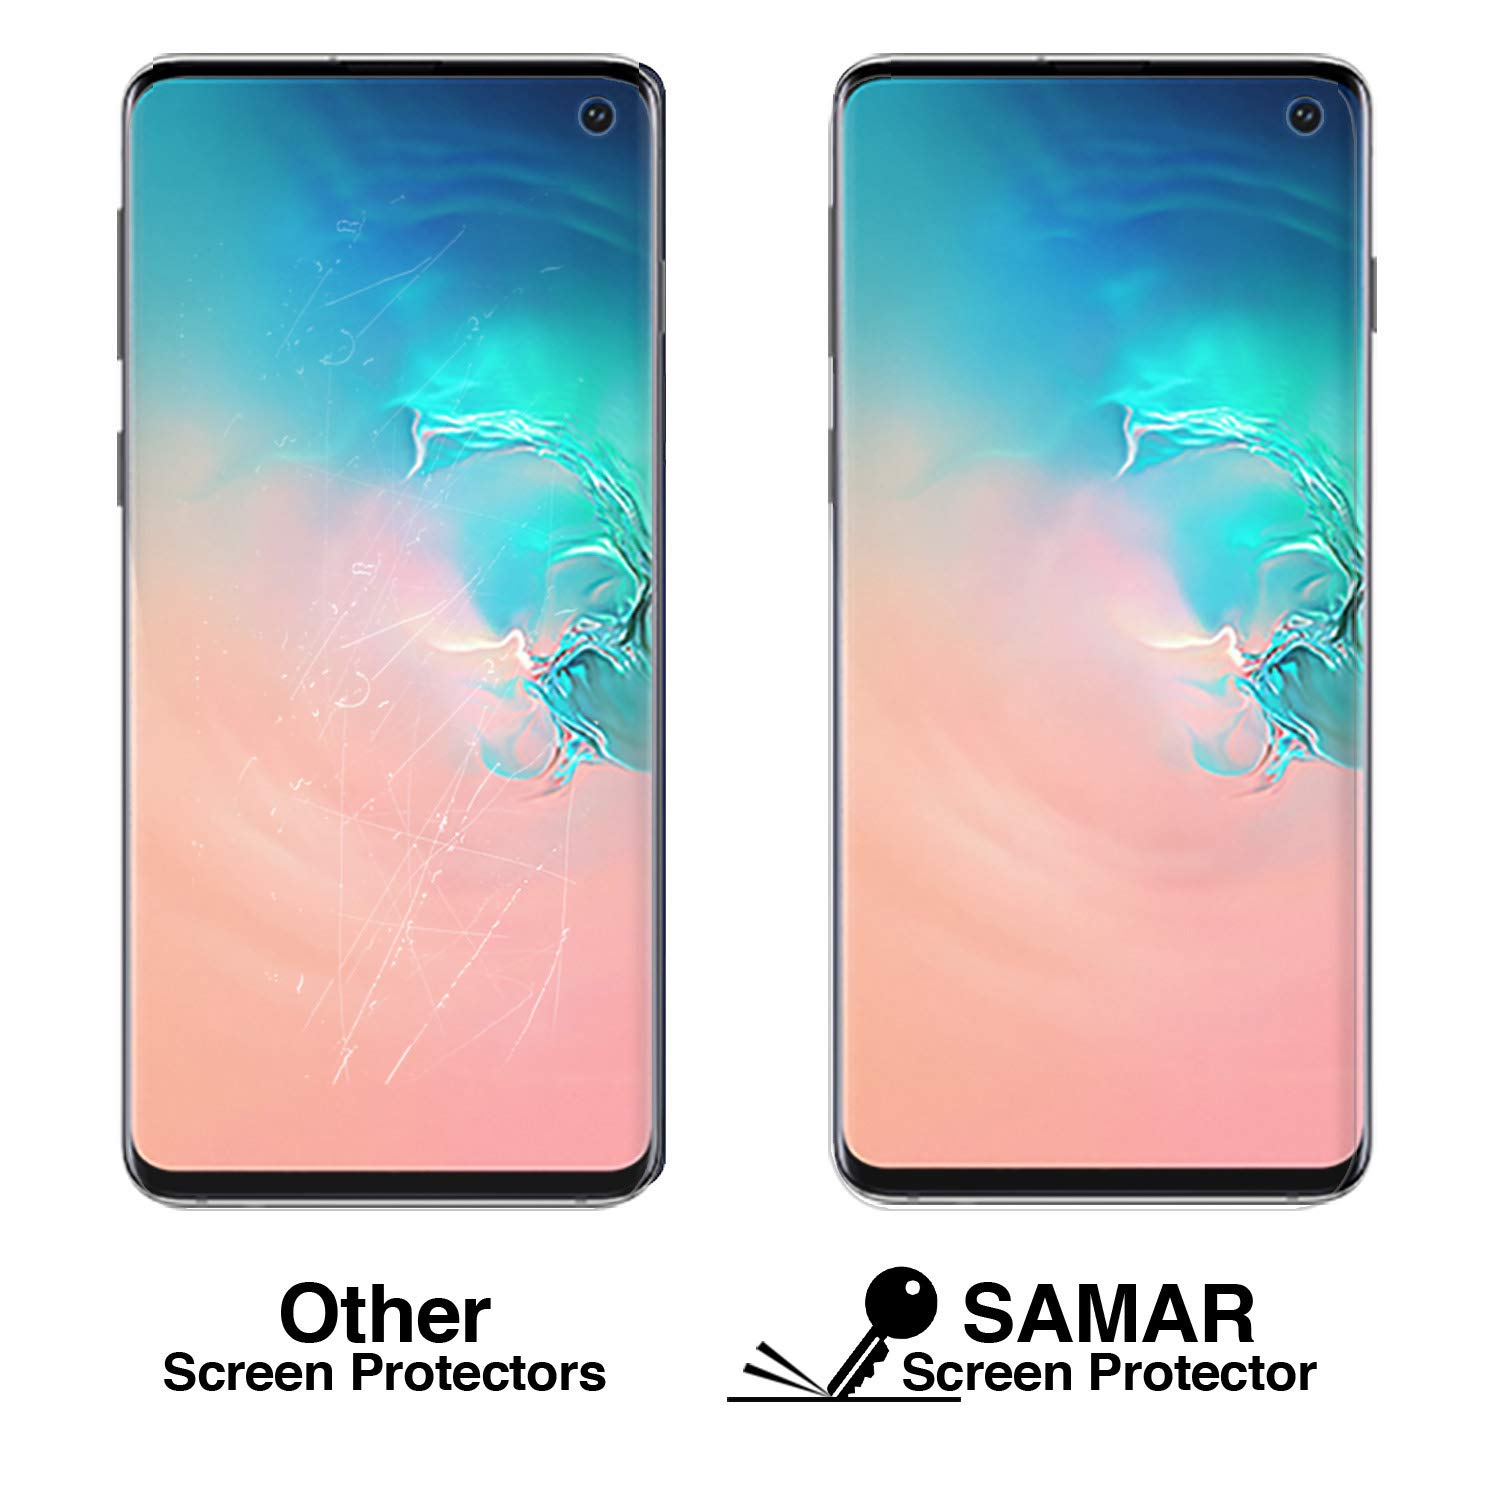 SAMAR Screen Protector (3 in Pack) for Samsung Galaxy S10, Premium Quality [Case Friendly] Crystal Clear Protectors {Full Size} highly invisible and work with in display fingerprint for Galaxy S10